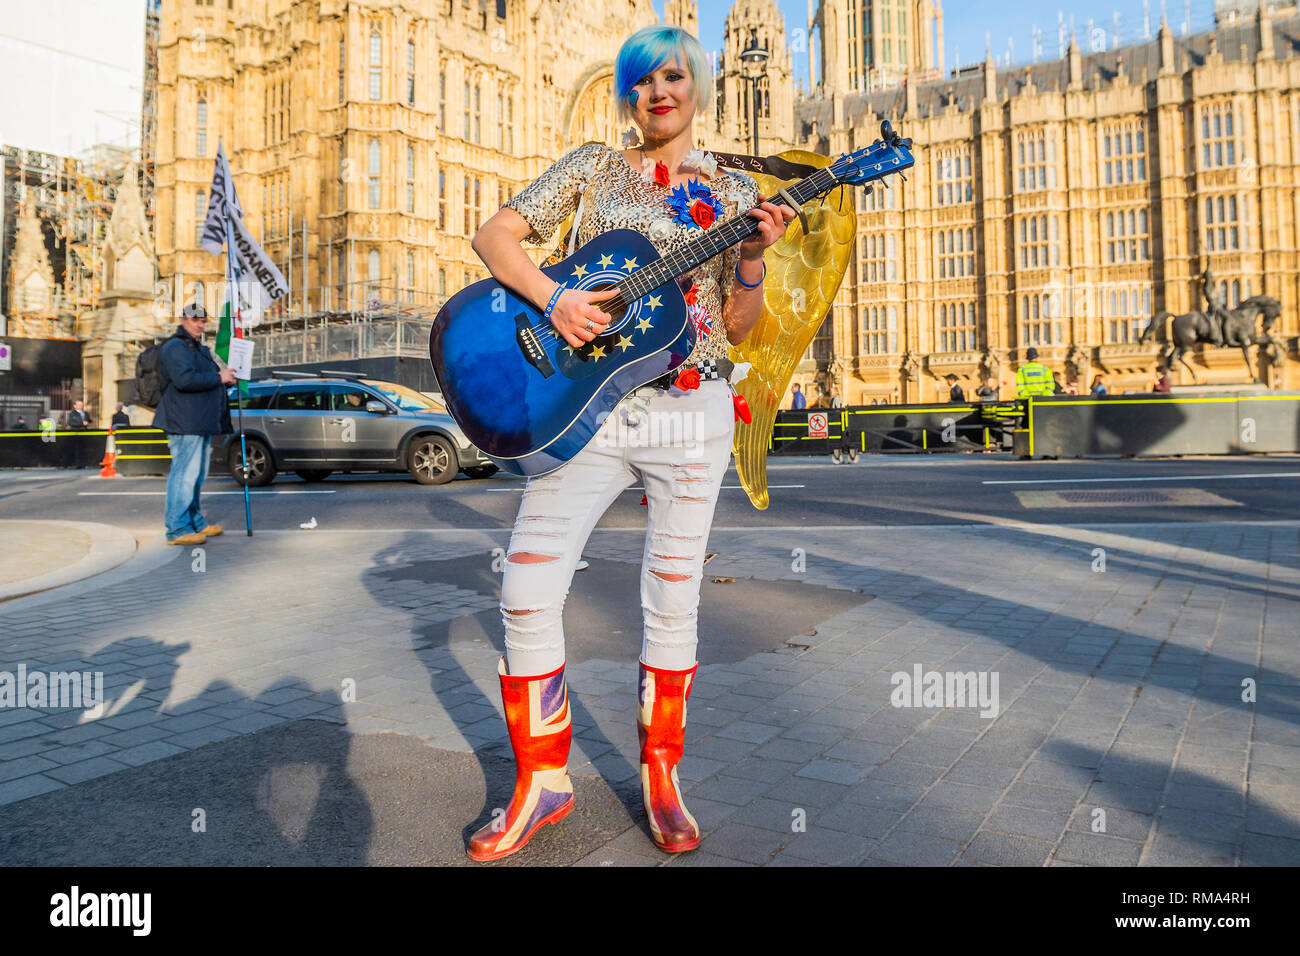 London, UK. 14th February, 2019. A singing angel leads the way to heaven, for remainers - Sodem pro EU protestors outside Parliament - Leave means leave and SODEM, pro EU, protestors continue to make their points, side by side, outside Parliament as the next vote on Theresa May's plan is due this evening. Credit: Guy Bell/Alamy Live News - Stock Image